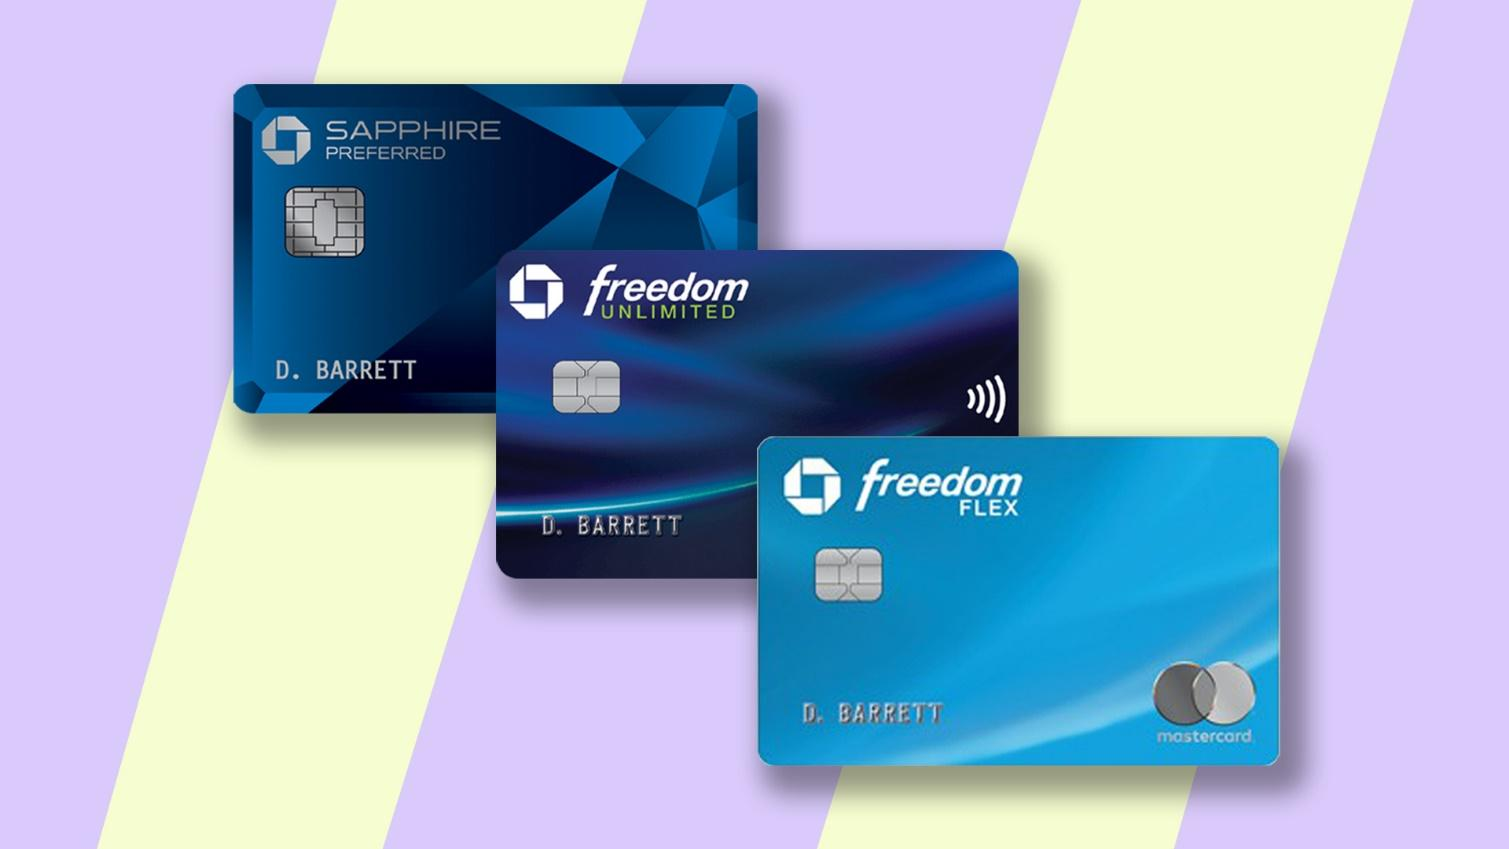 More Travel Discounts - Learn How to Order the Chase Sapphire Card